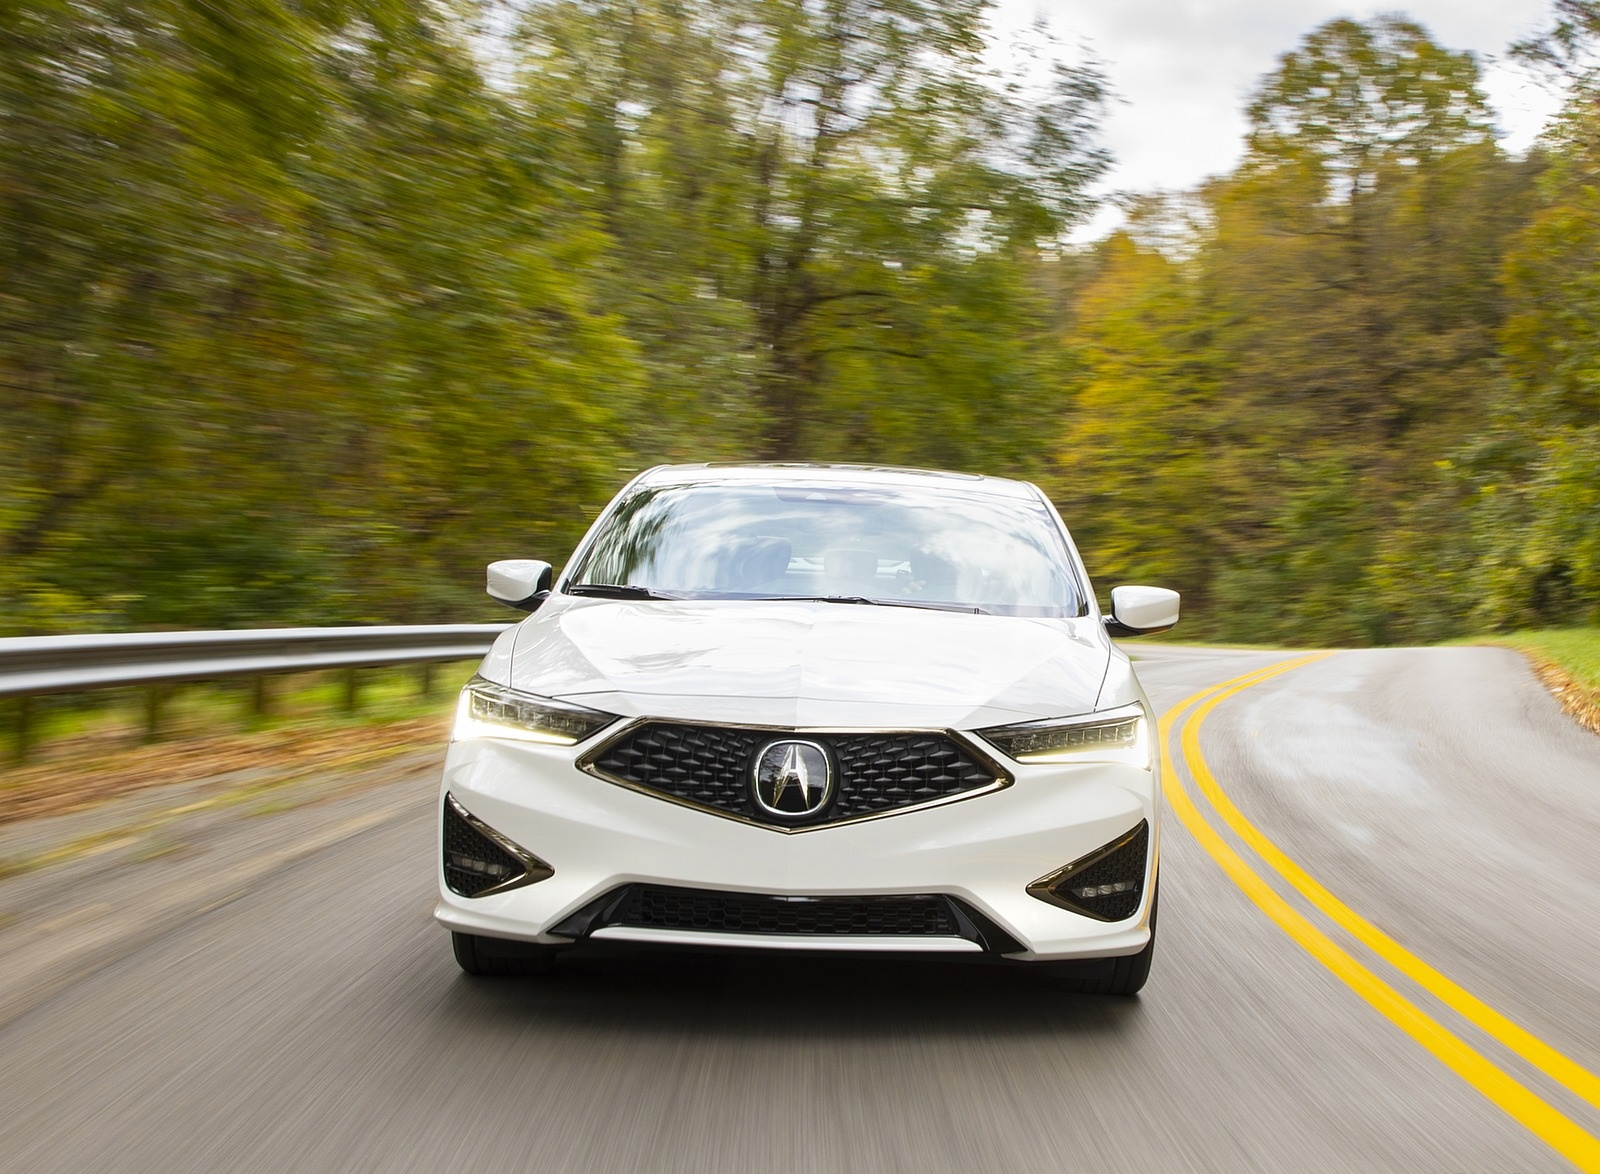 2020 Acura ILX A-Spec Front Wallpapers (2)